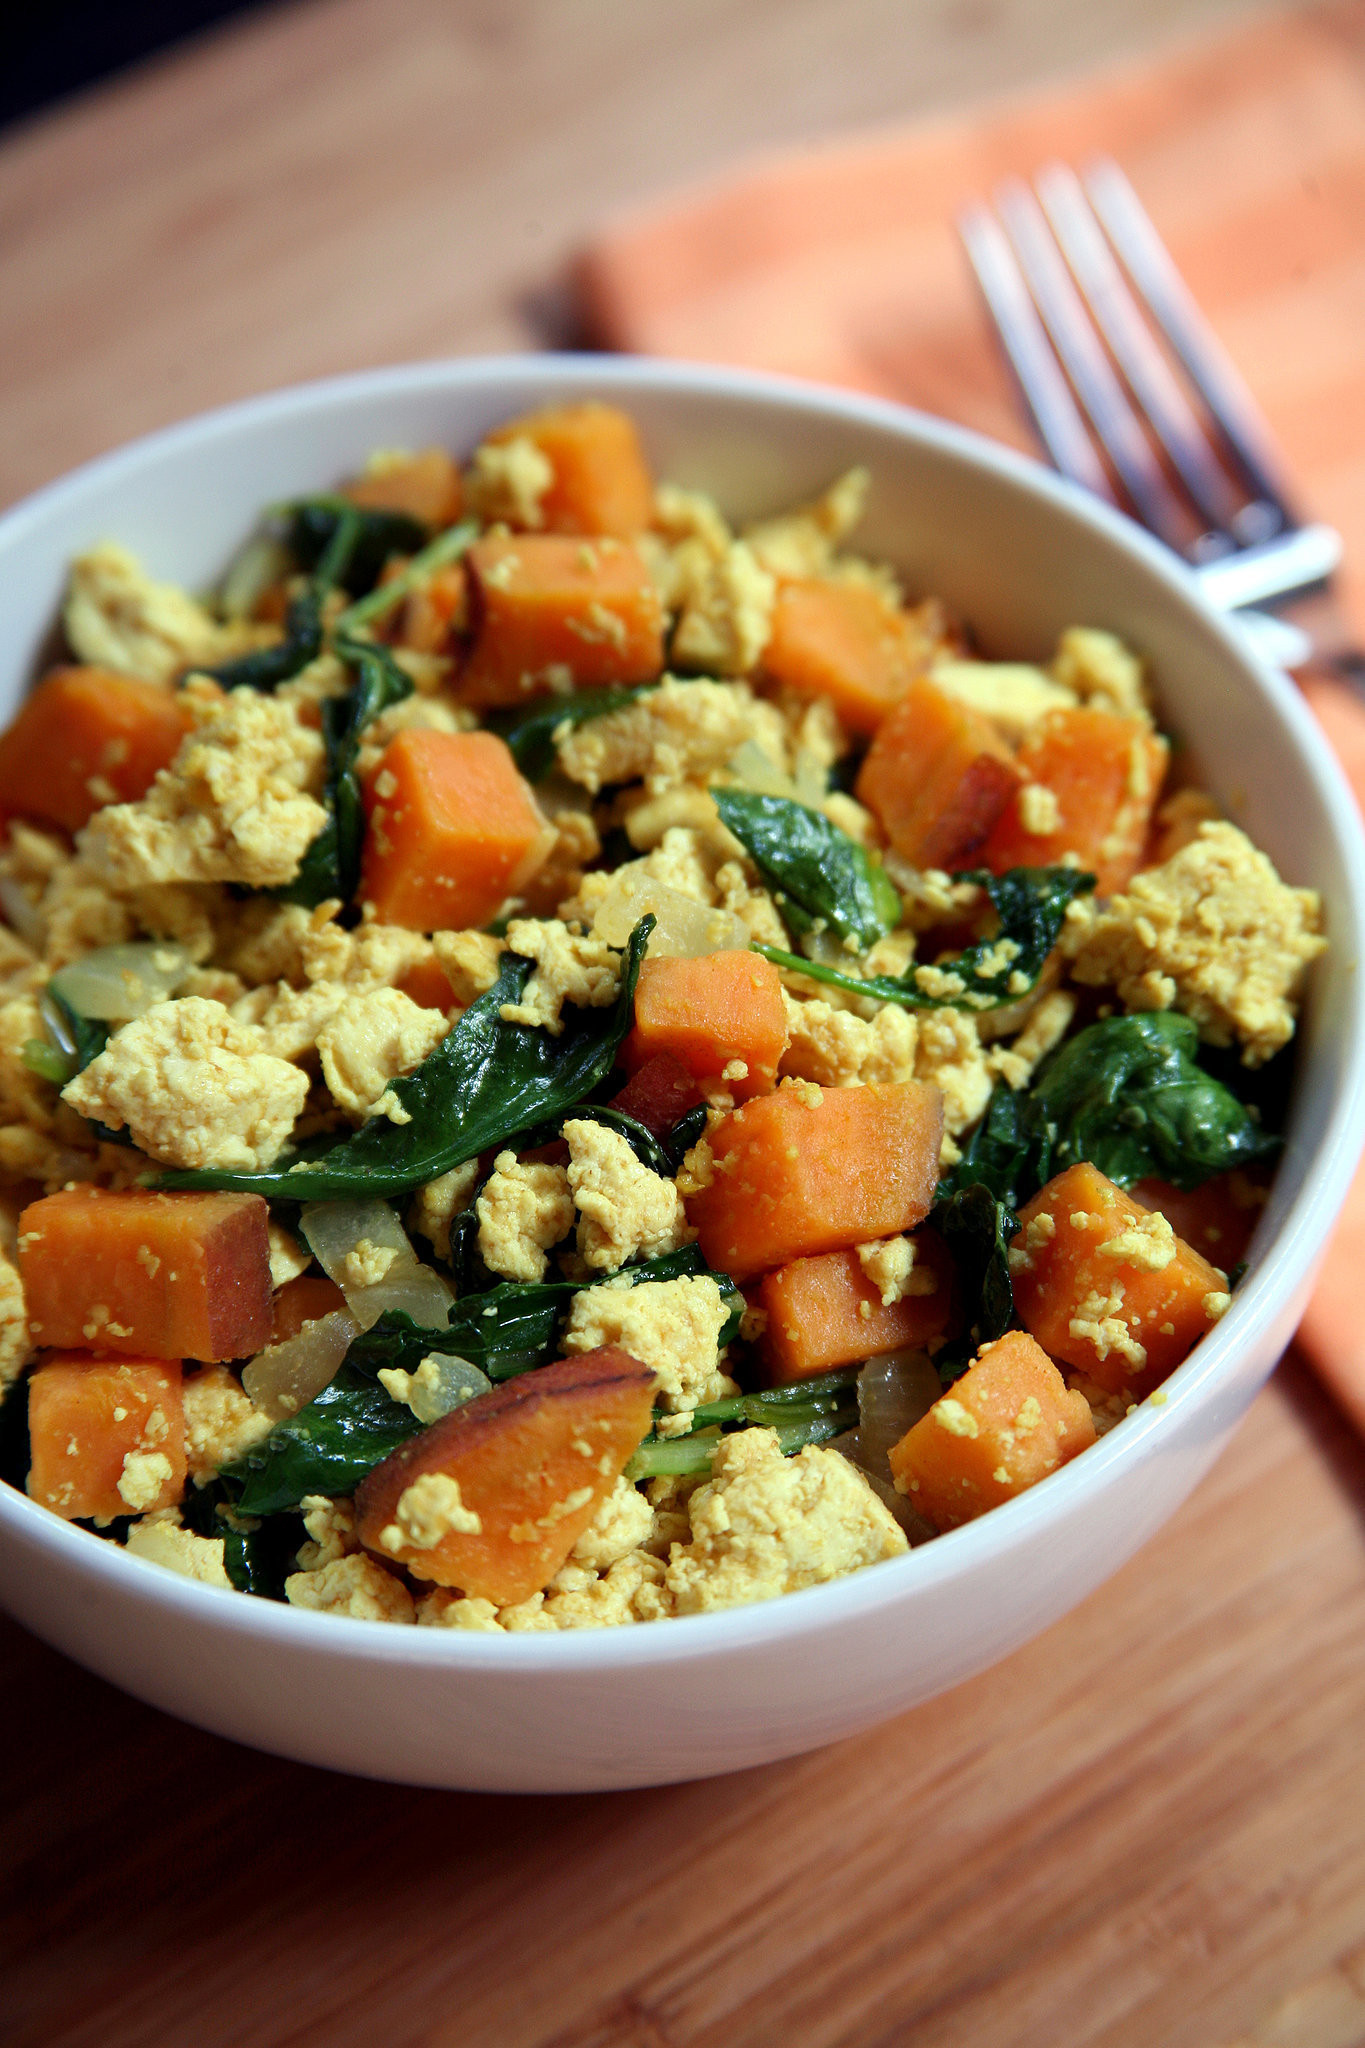 Tofu Recipes Healthy  Vegan Breakfast Recipes Tofu Kale Sweet Potato Scramble